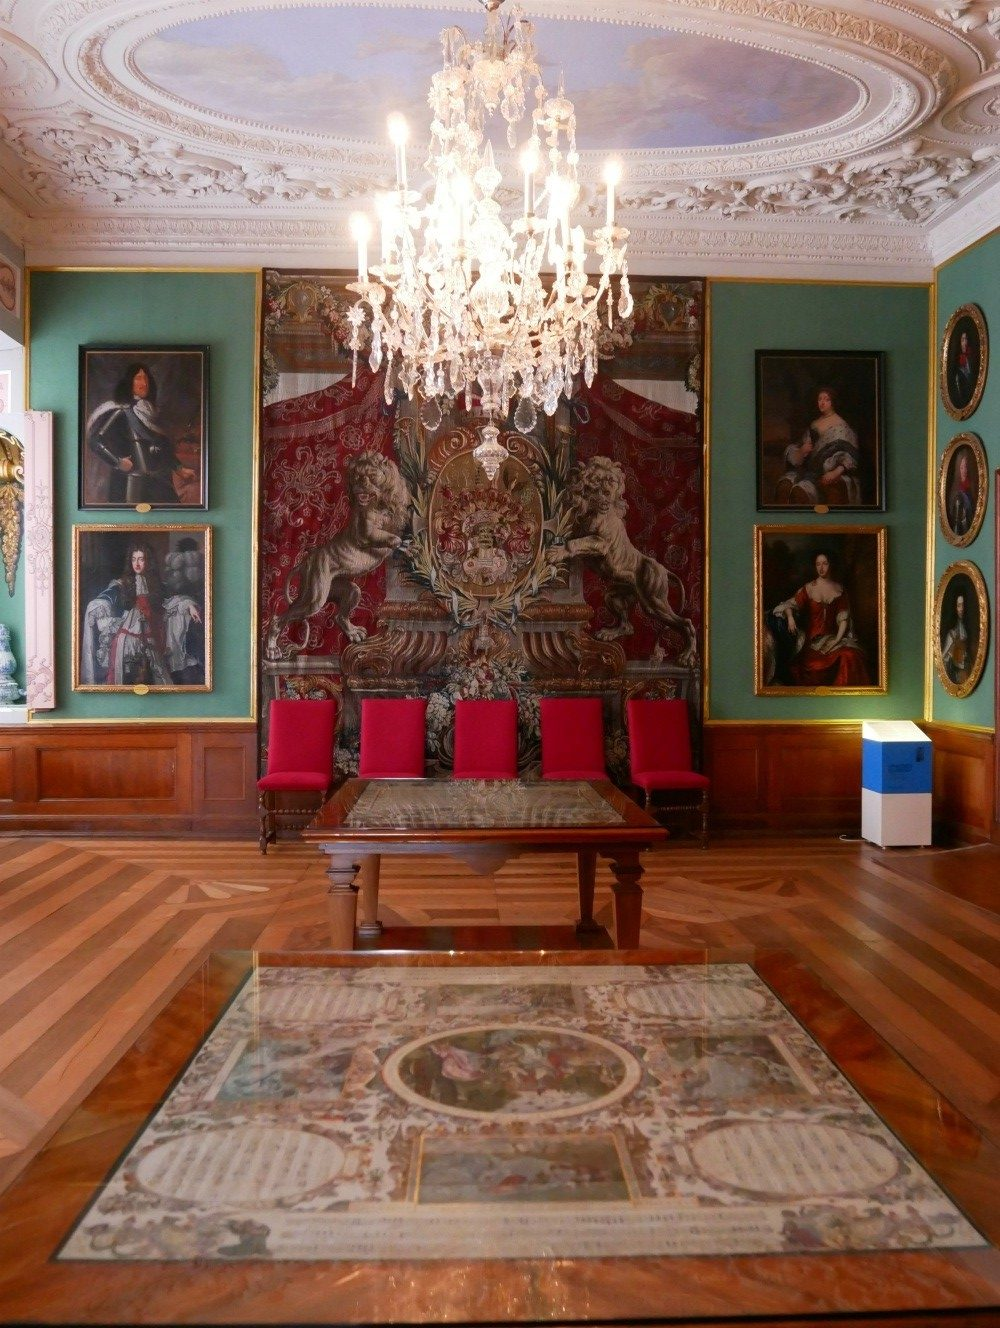 Reception room at Friedenstein Palace in Gotha, Thuringia, Germany Photo Heatheronhertravels.com